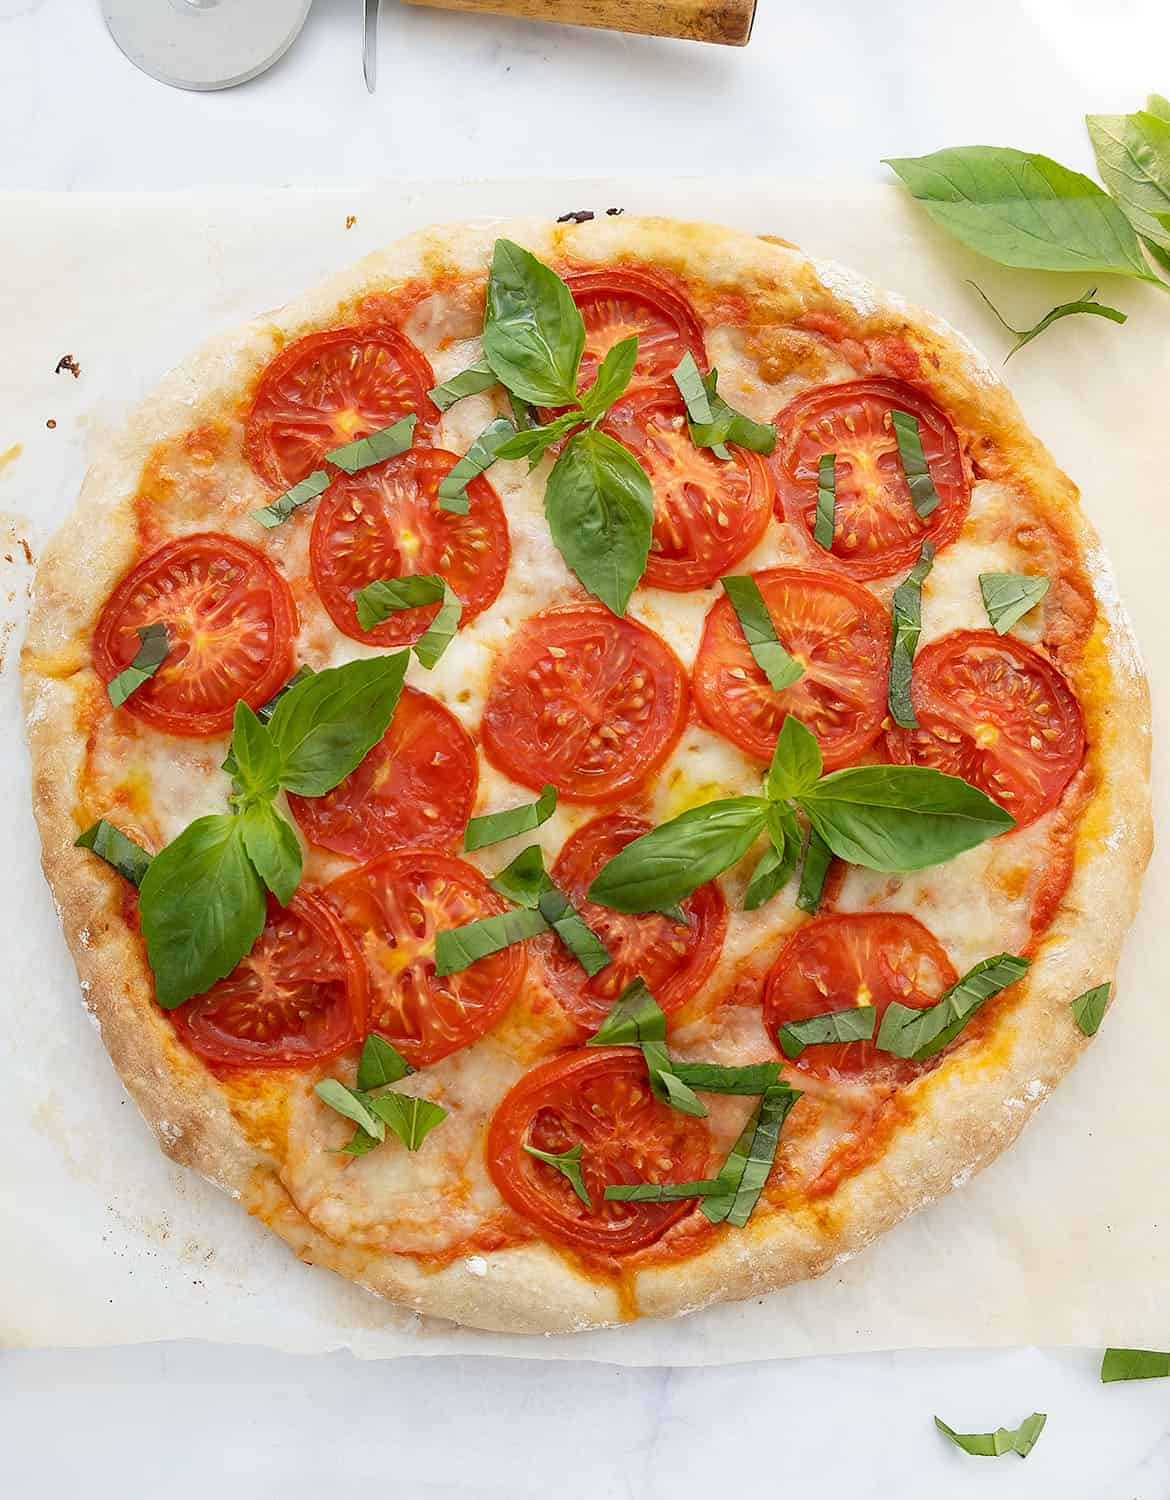 A caprese pizza on a white background with fresh basil leaves.